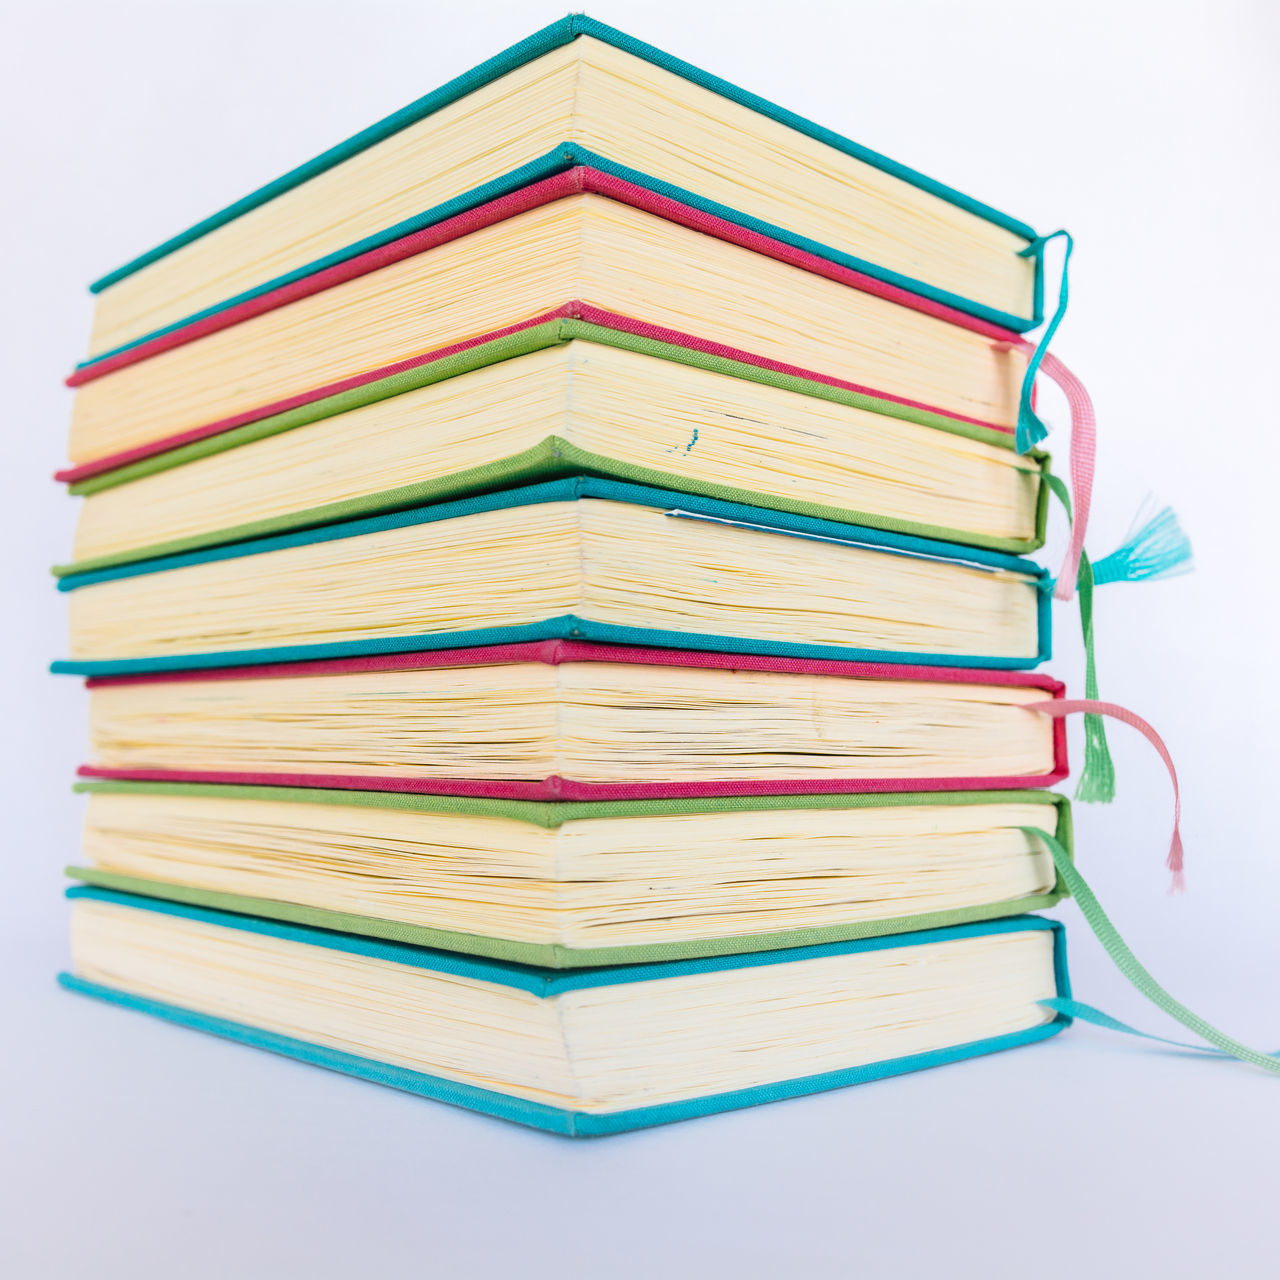 Colorful Books Blue Book Books Close-up Colorful Colors Cyan Document Education Educational Green Learning LearningEveryday Library No People Page Pink Reading Reading Books Reading Time Stack Study Hard Study Time Studying White Background